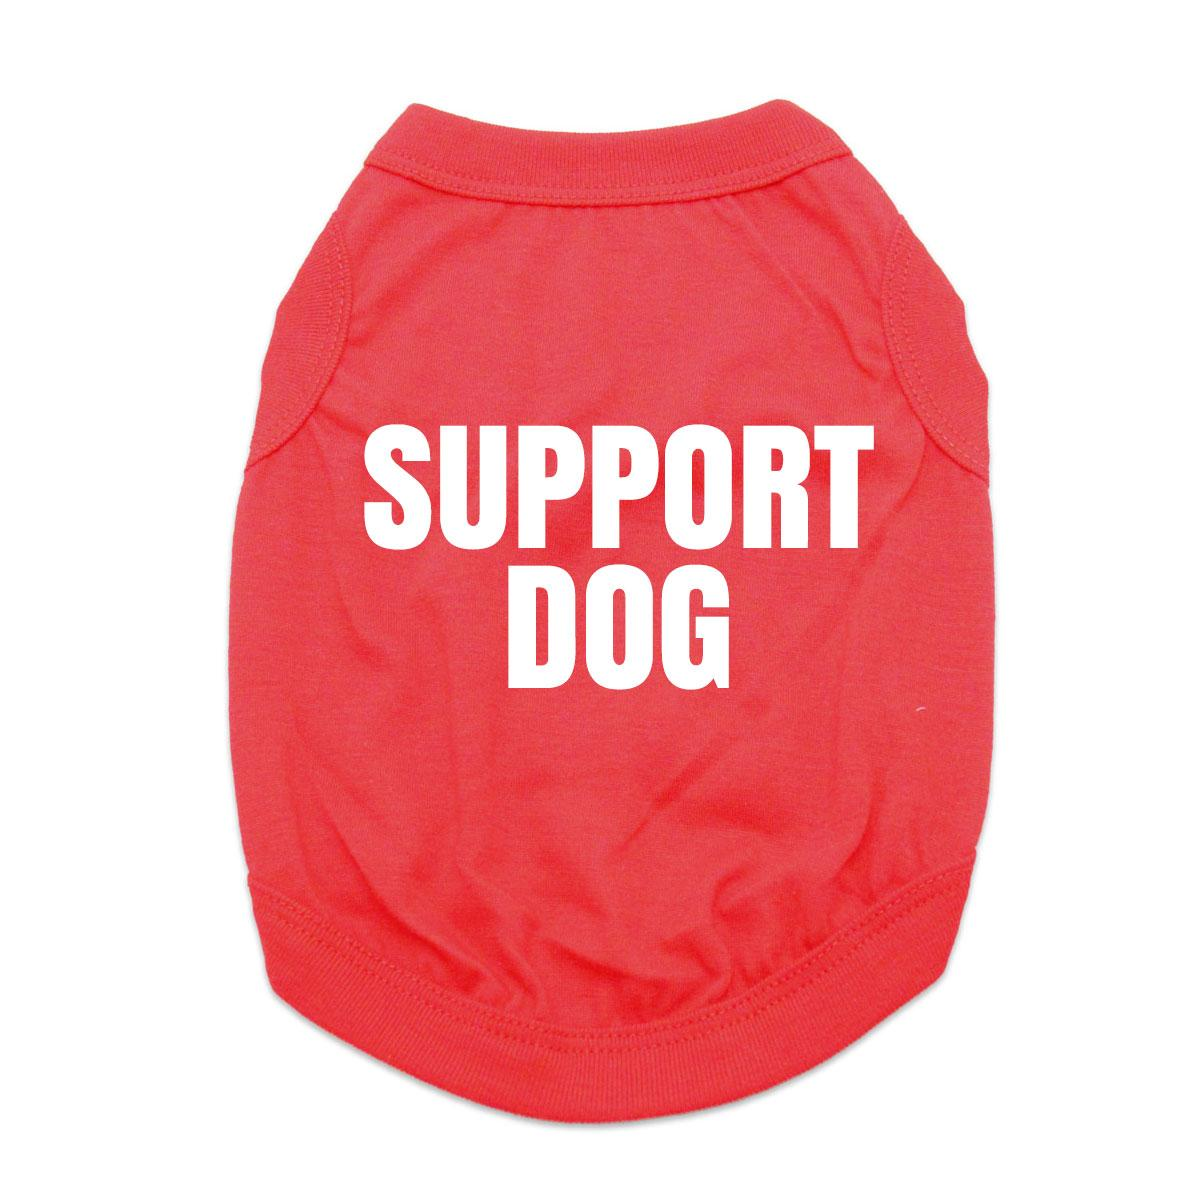 Support Dog Shirt - Red